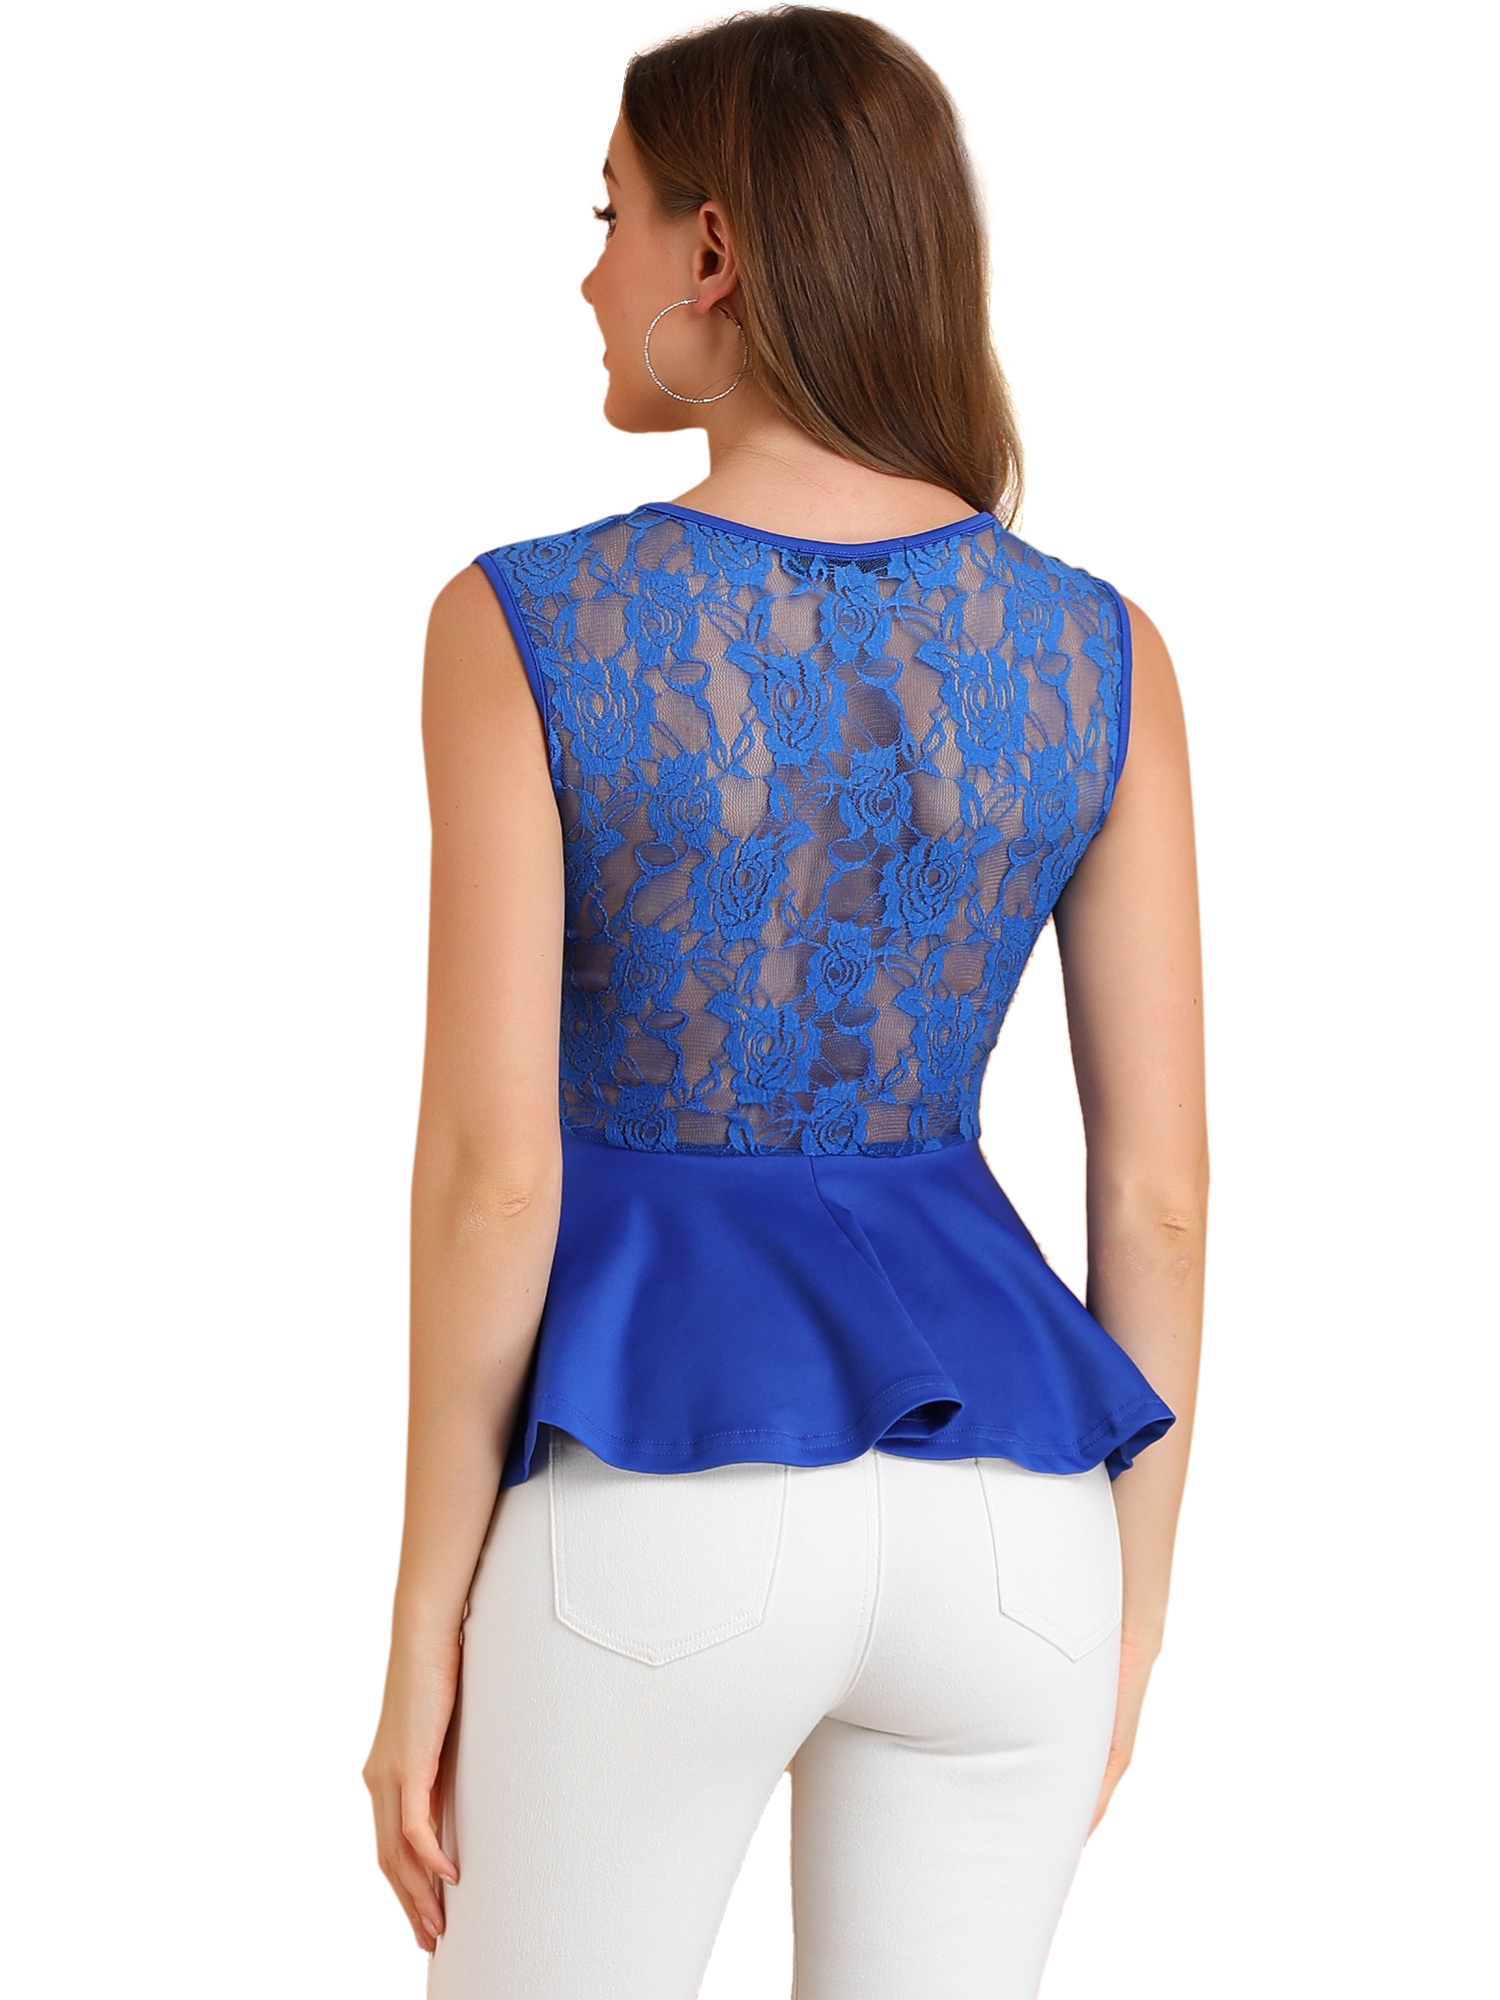 Women Round Neck Lace-Paneled Sleeveless Peplum Top Blue XL